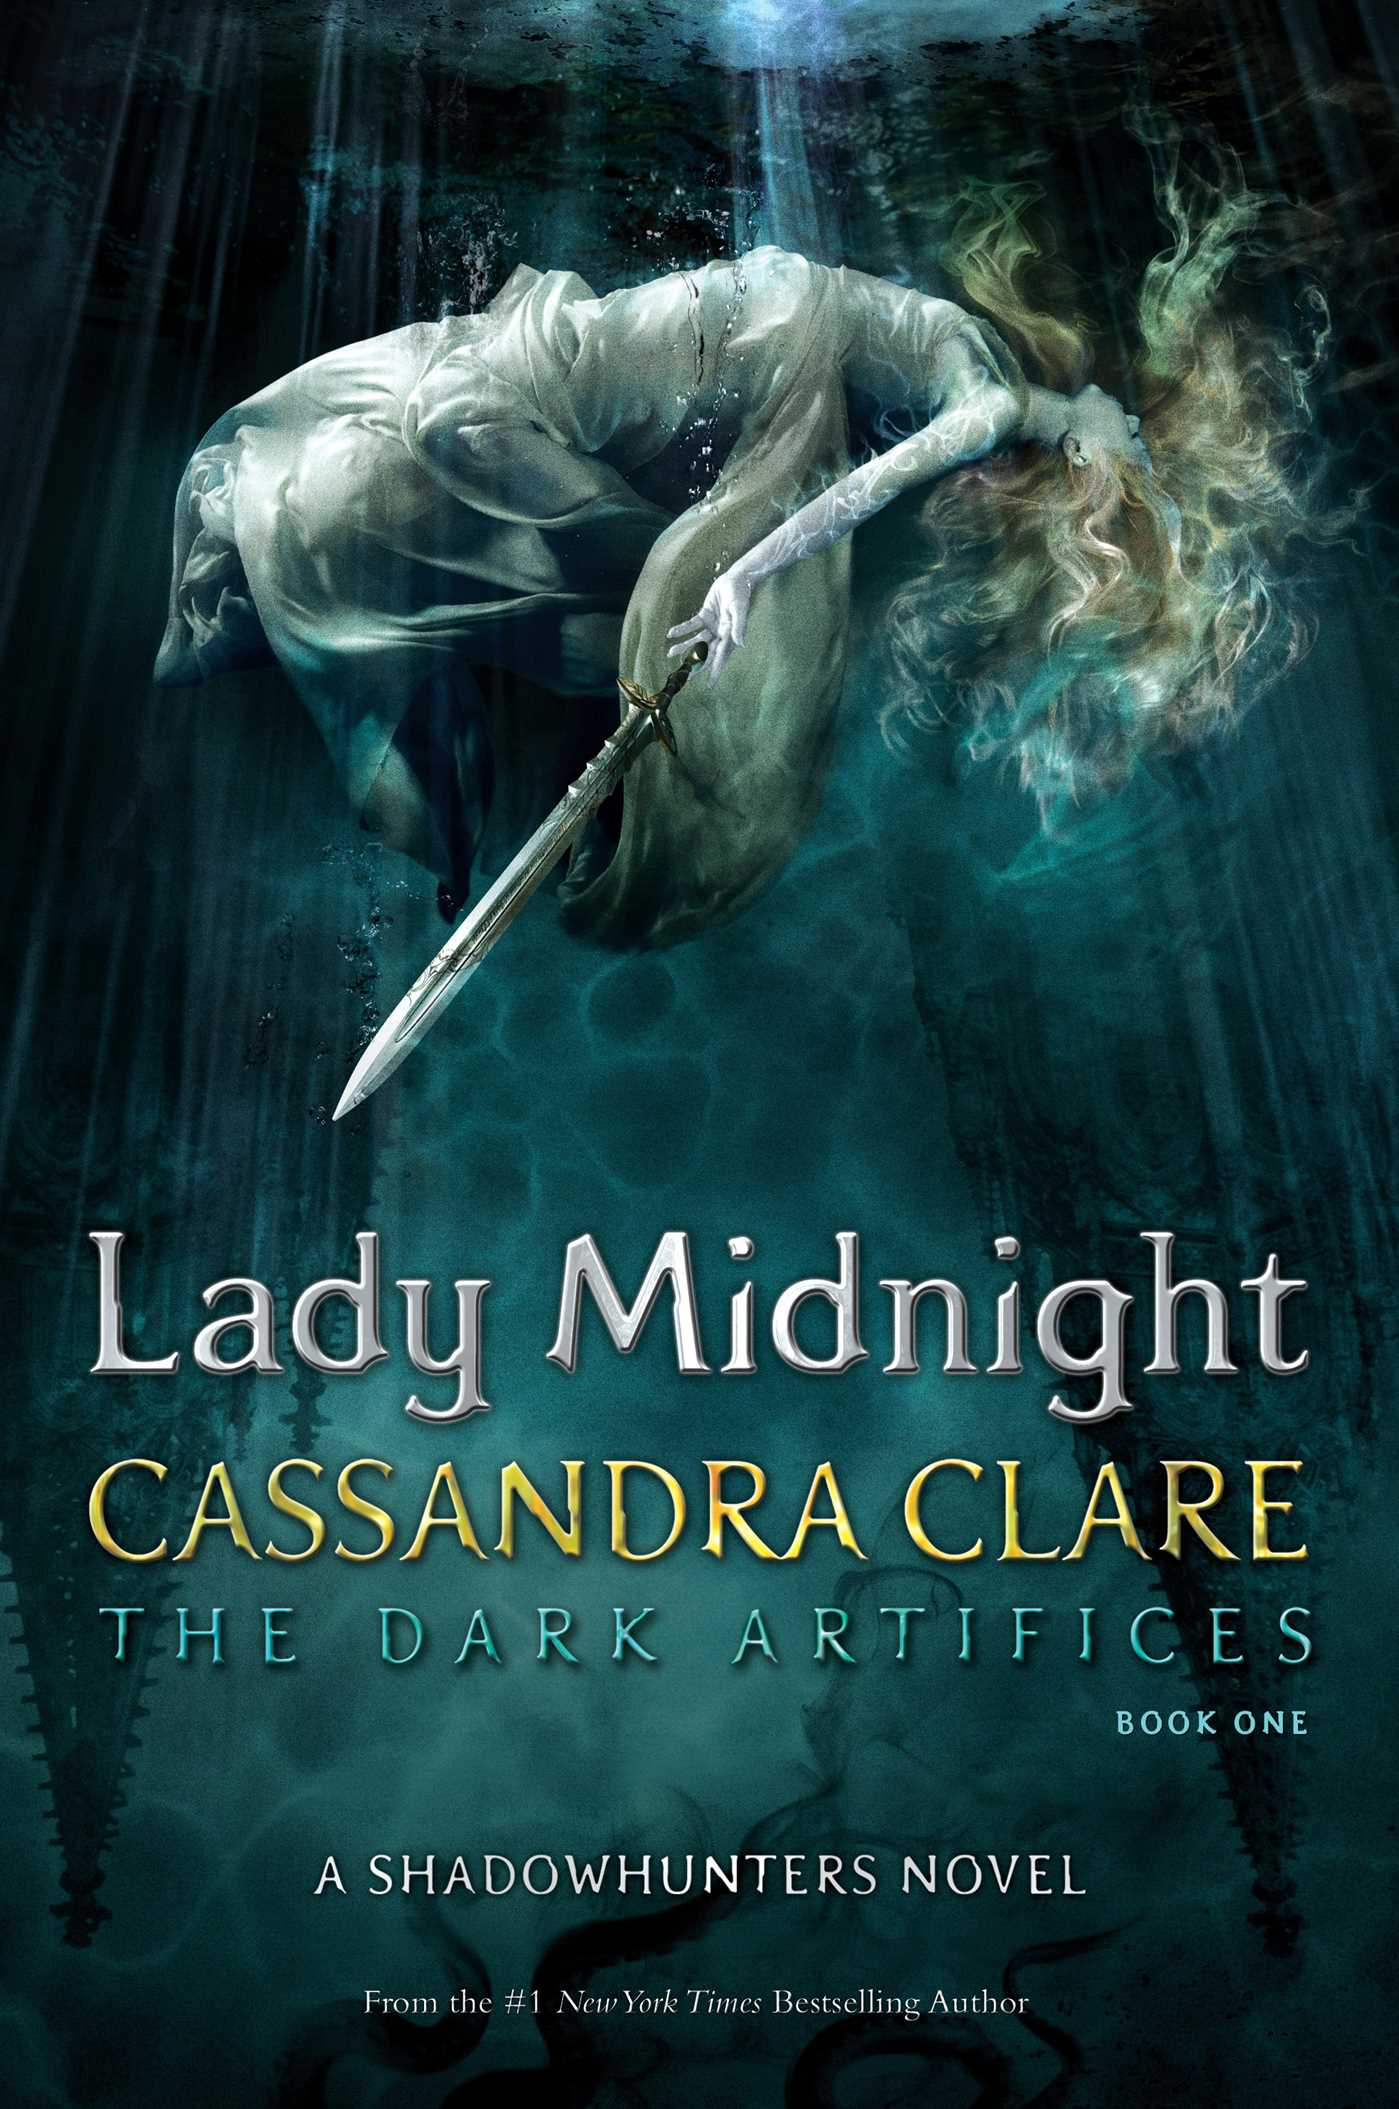 Shadowhunters - Lady Midnight Is Released In One Week! - 1003